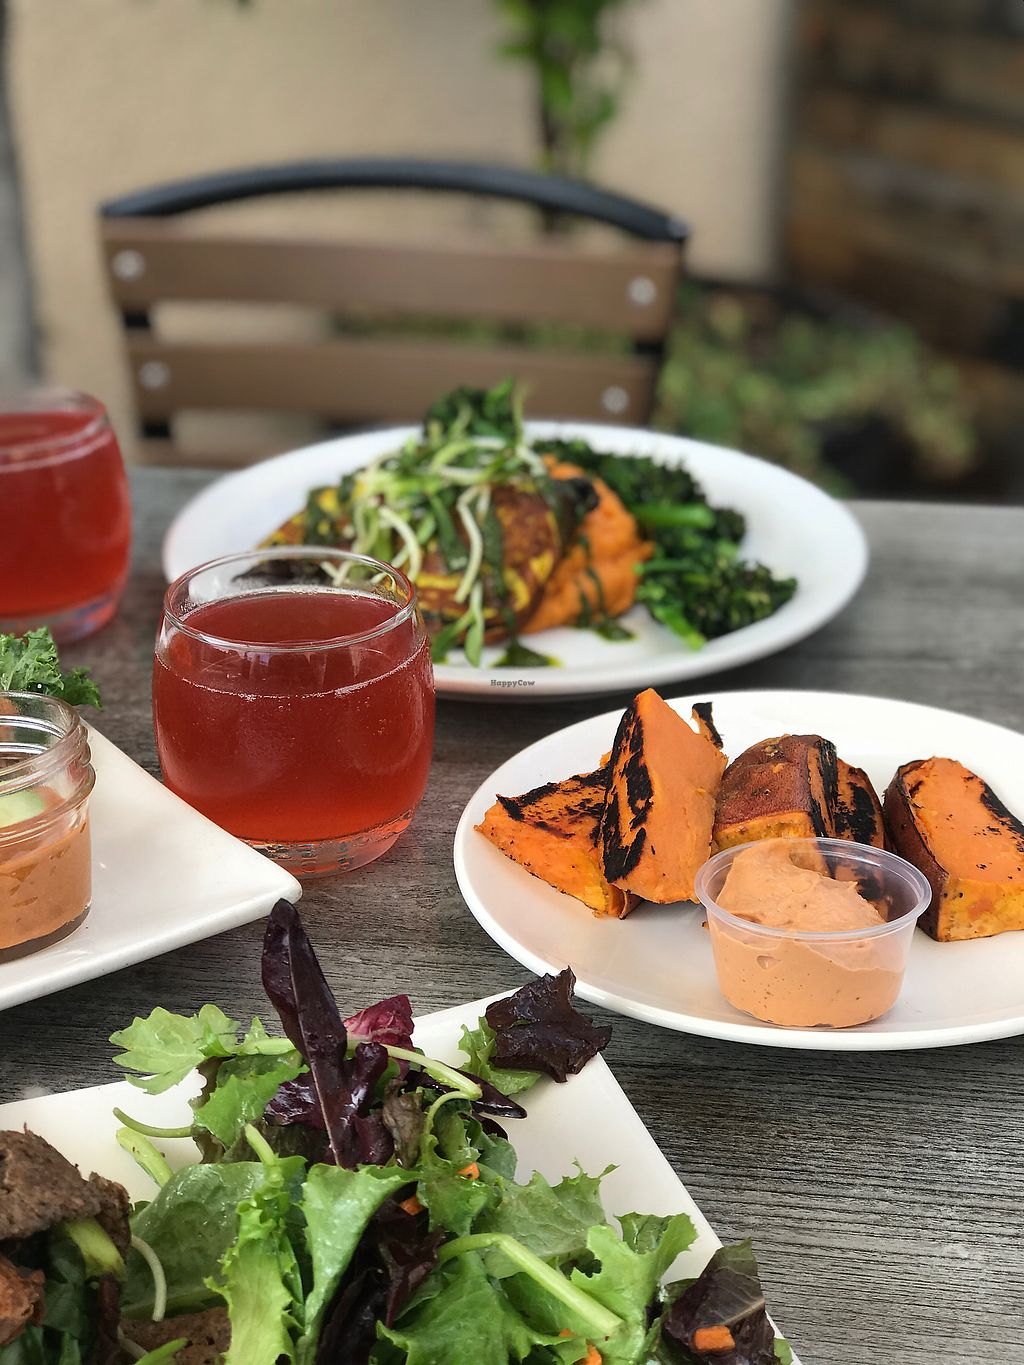 """Photo of Trilogy Sanctuary  by <a href=""""/members/profile/CameronDoherty"""">CameronDoherty</a> <br/>Boochcraft and Sweet Potatoes wedges ! <br/> October 1, 2017  - <a href='/contact/abuse/image/50264/310641'>Report</a>"""